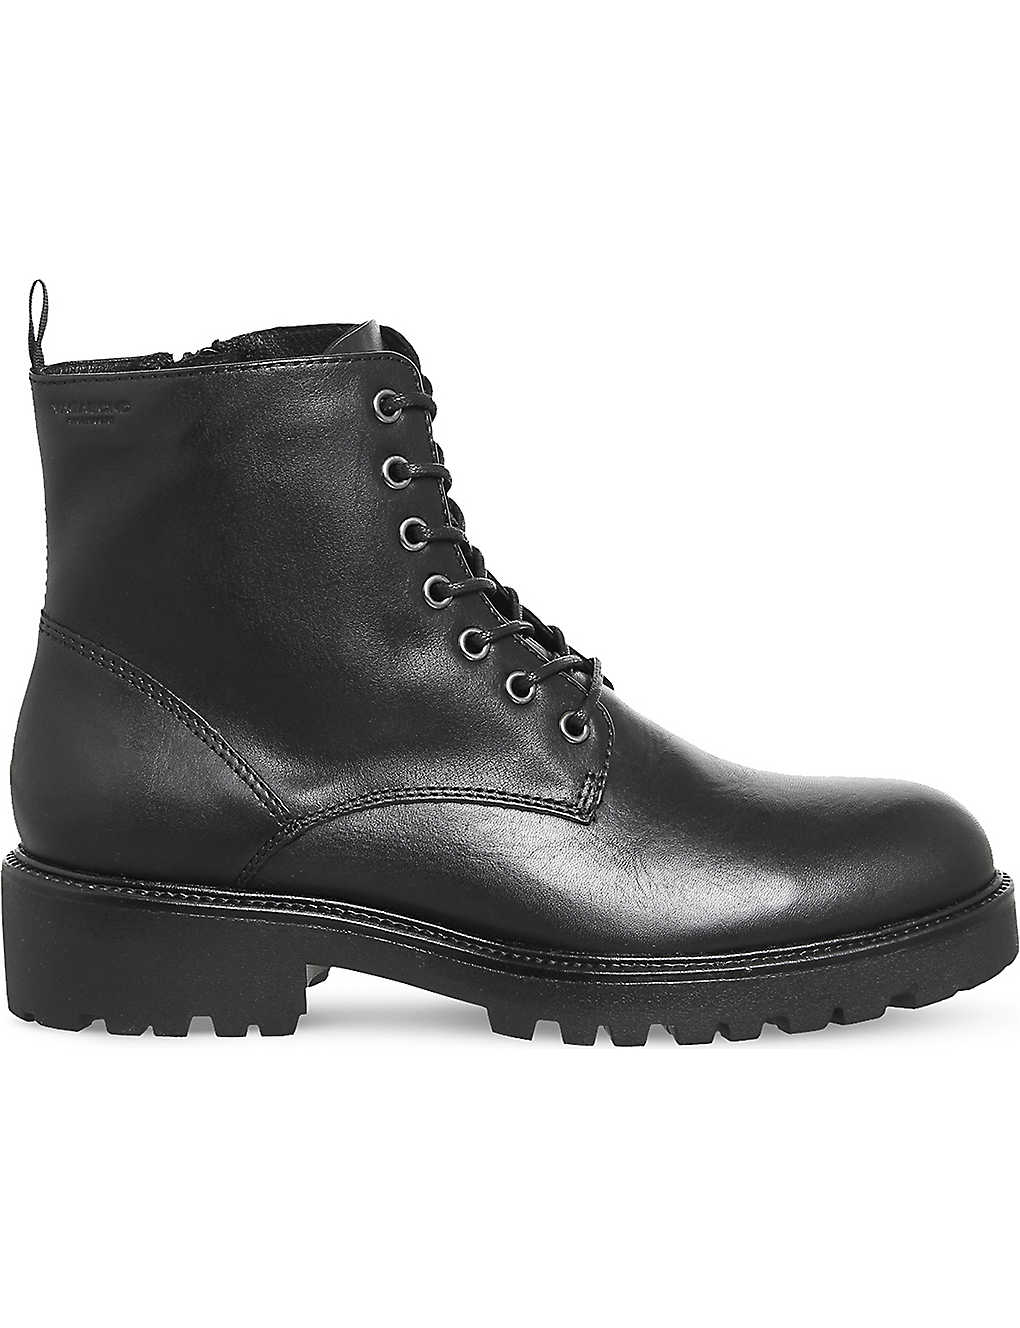 ef1875dae8 Kenova leather boots - Black leather ...